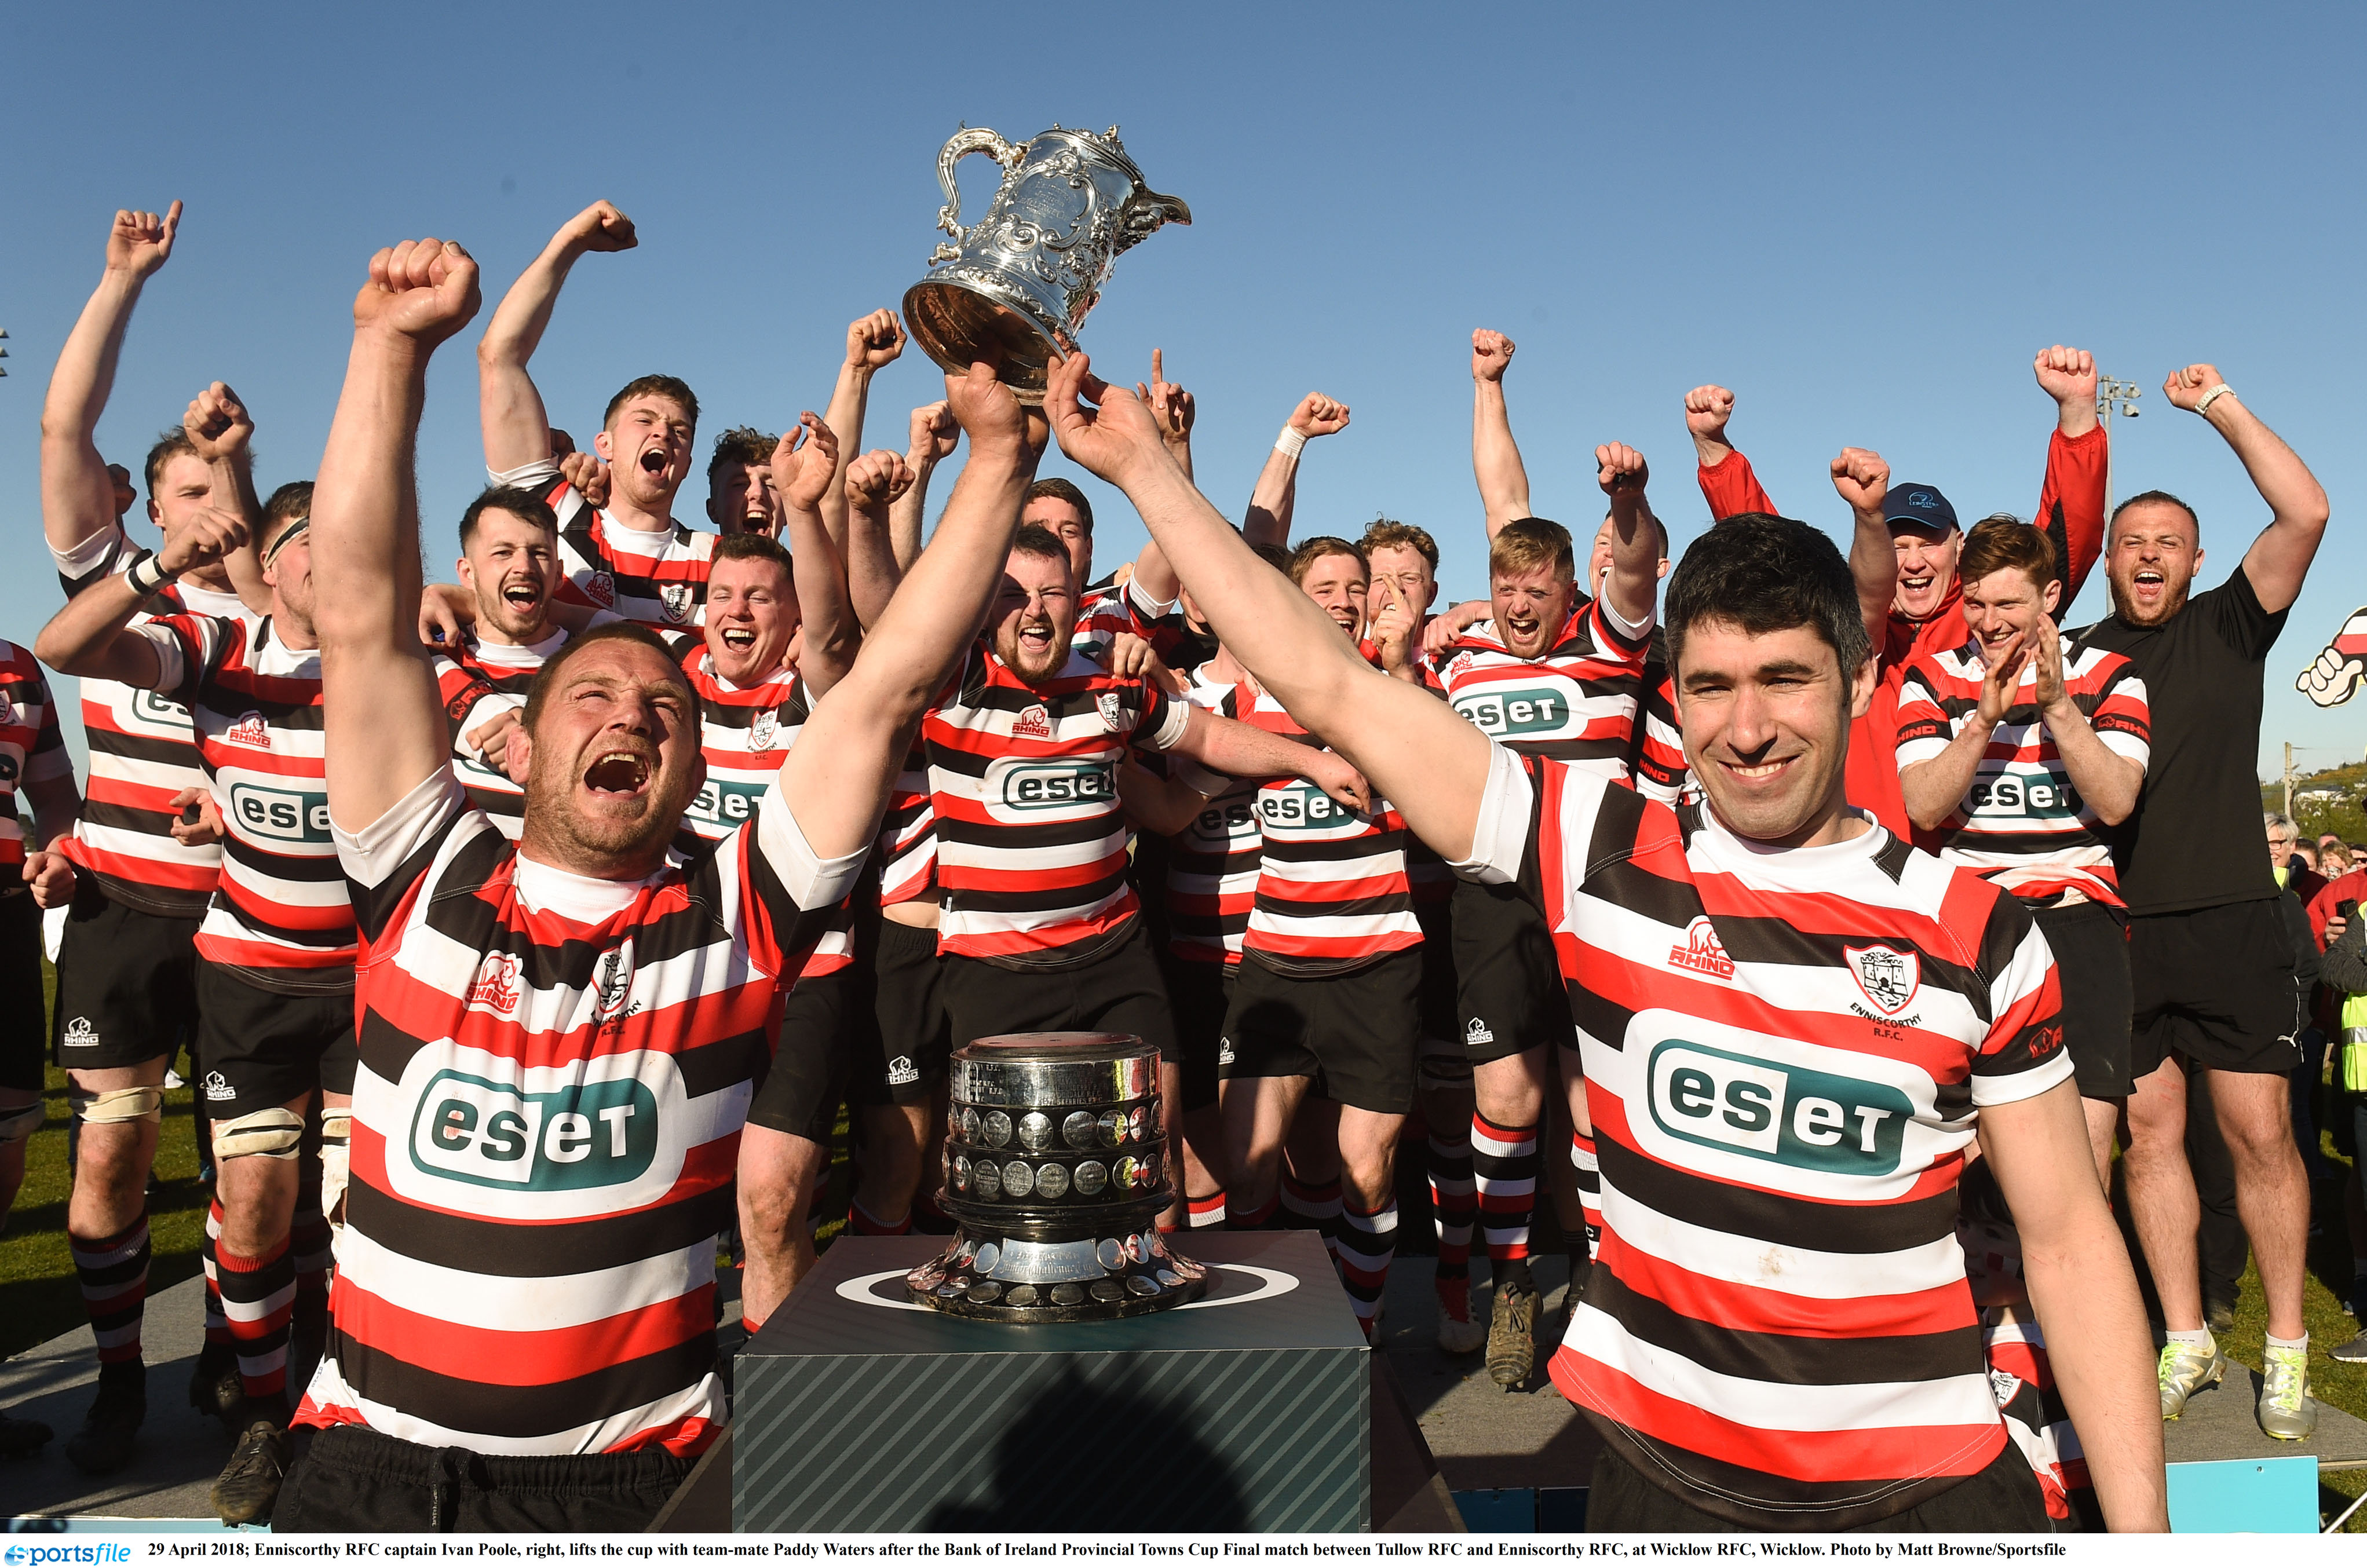 image of 106 years of Enniscorthy rugby history in 13 minutes